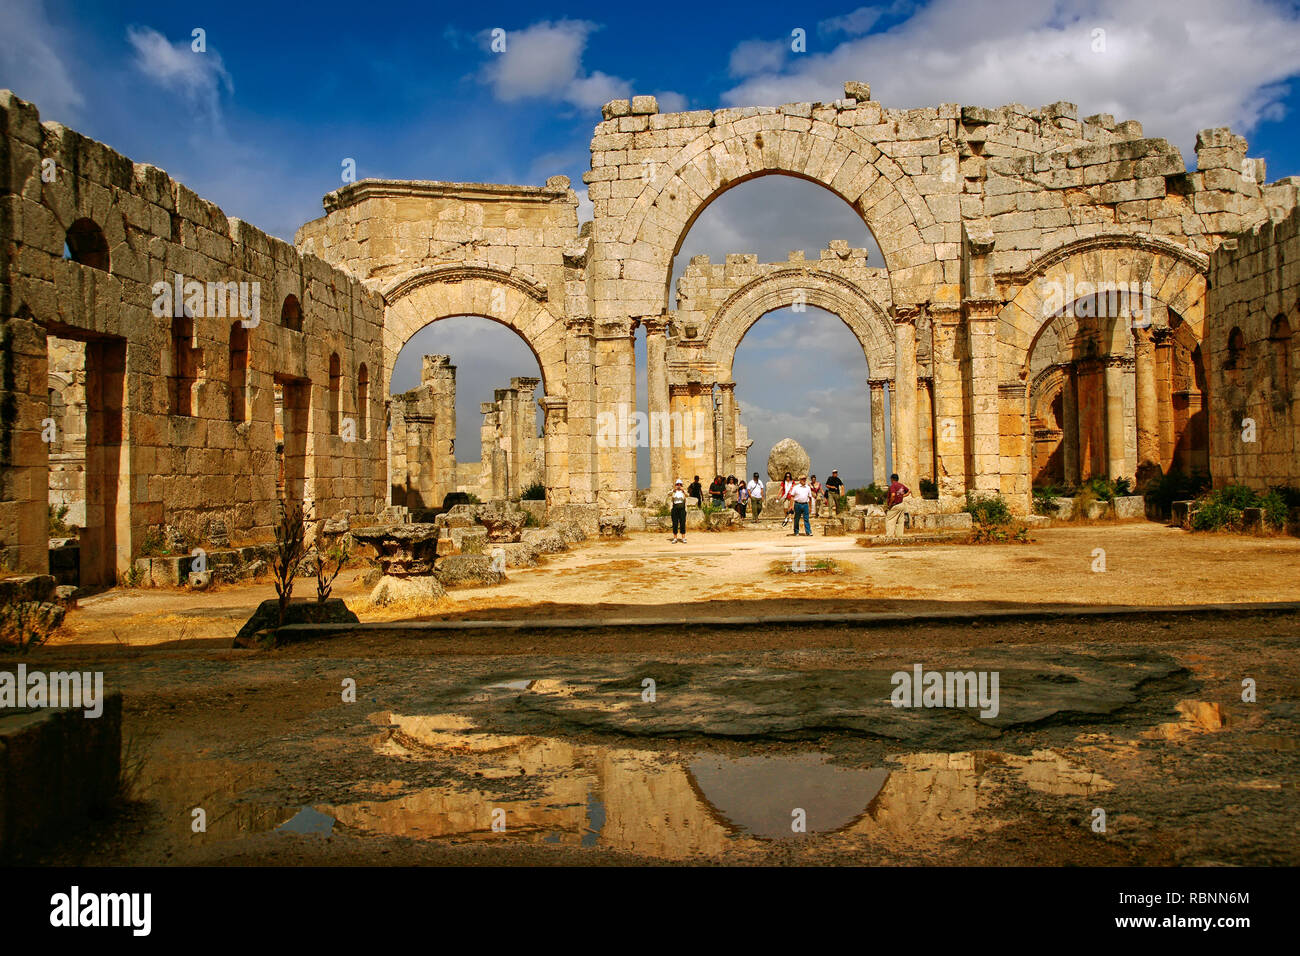 Basilique at the citadelle of Saint Simeon the Stylist, Qa´laat Samaan. Syria, Middle East - Stock Image